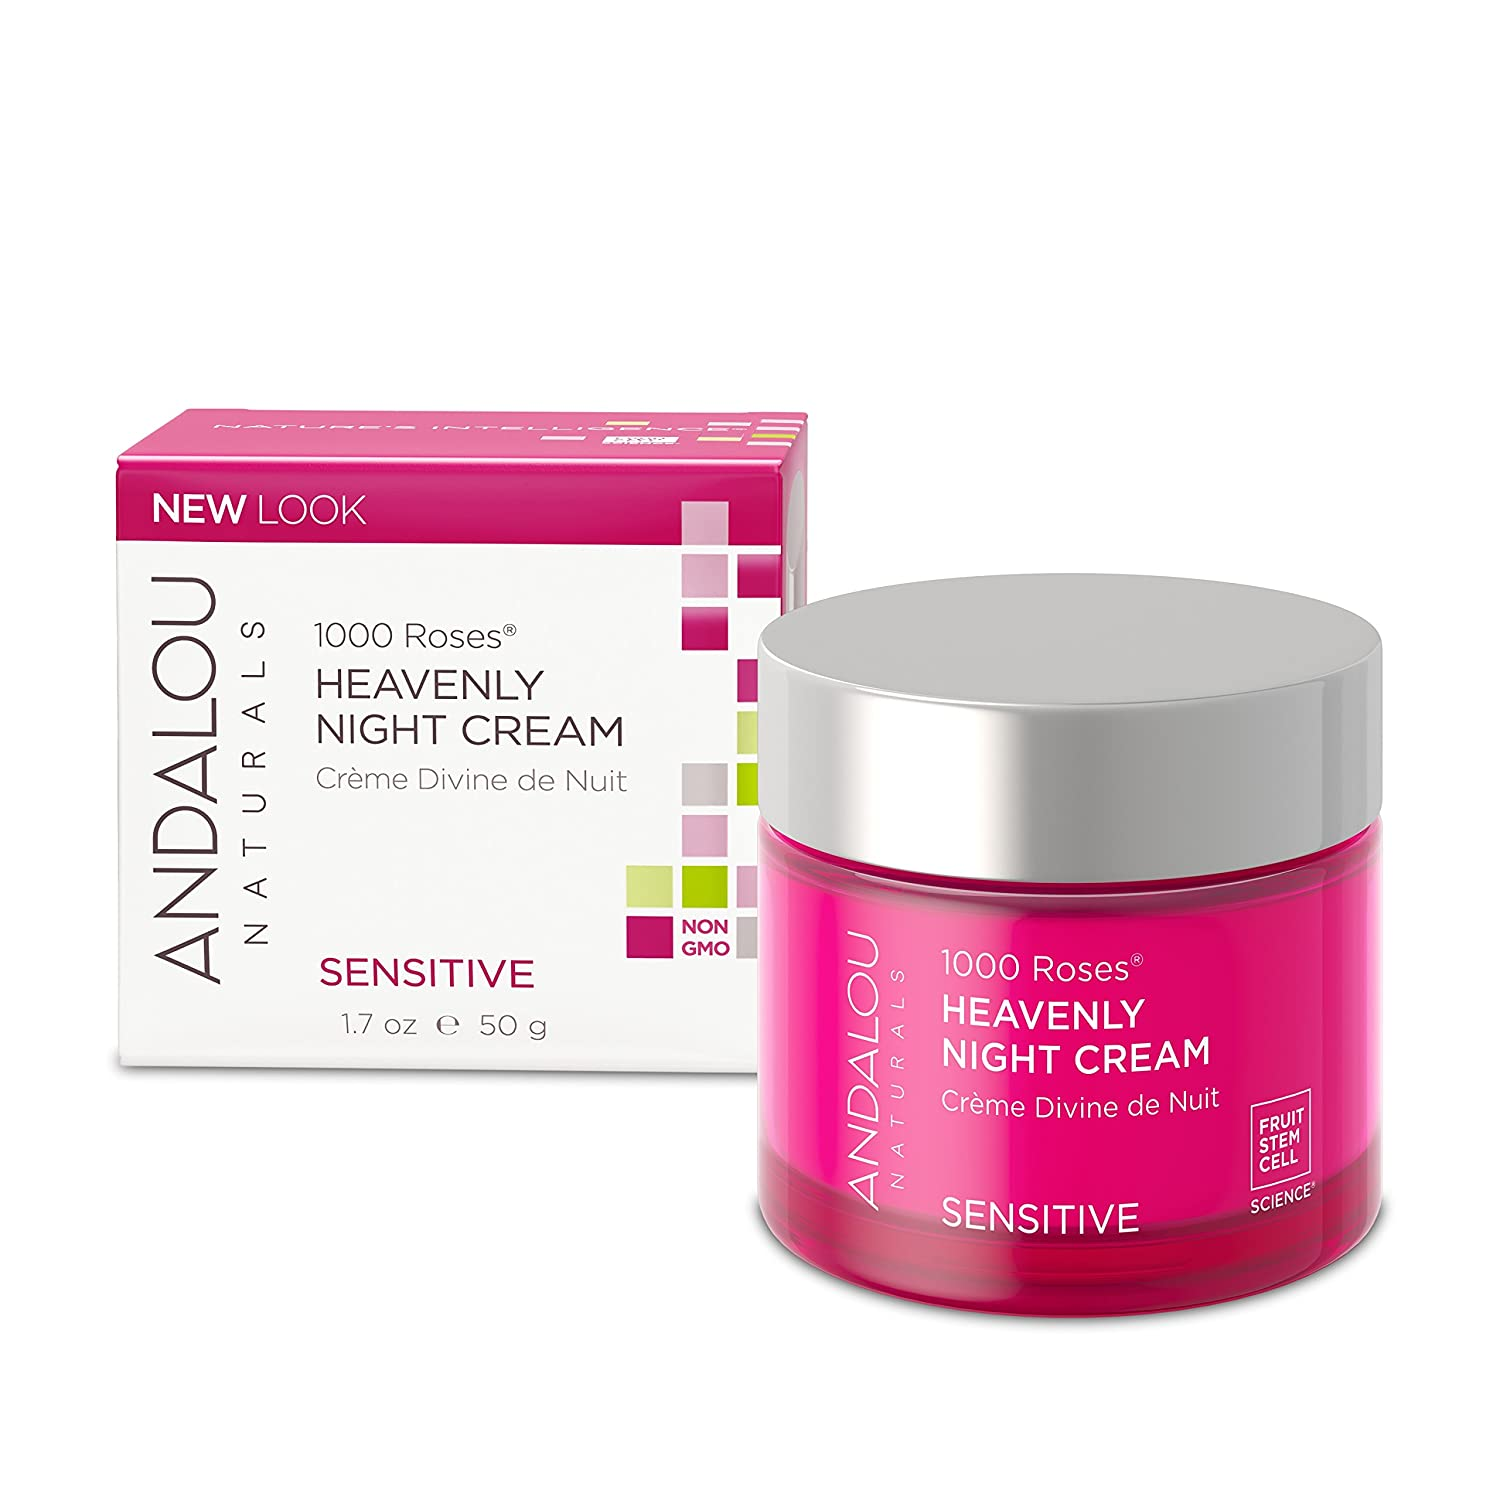 Andalou Naturals Resveratrol Q10 Night Repair Cream, 1.7 oz, For Dry Skin, Fine Lines & Wrinkles, For Softer, Smoother, Younger Looking Skin Aroma Naturals 43753